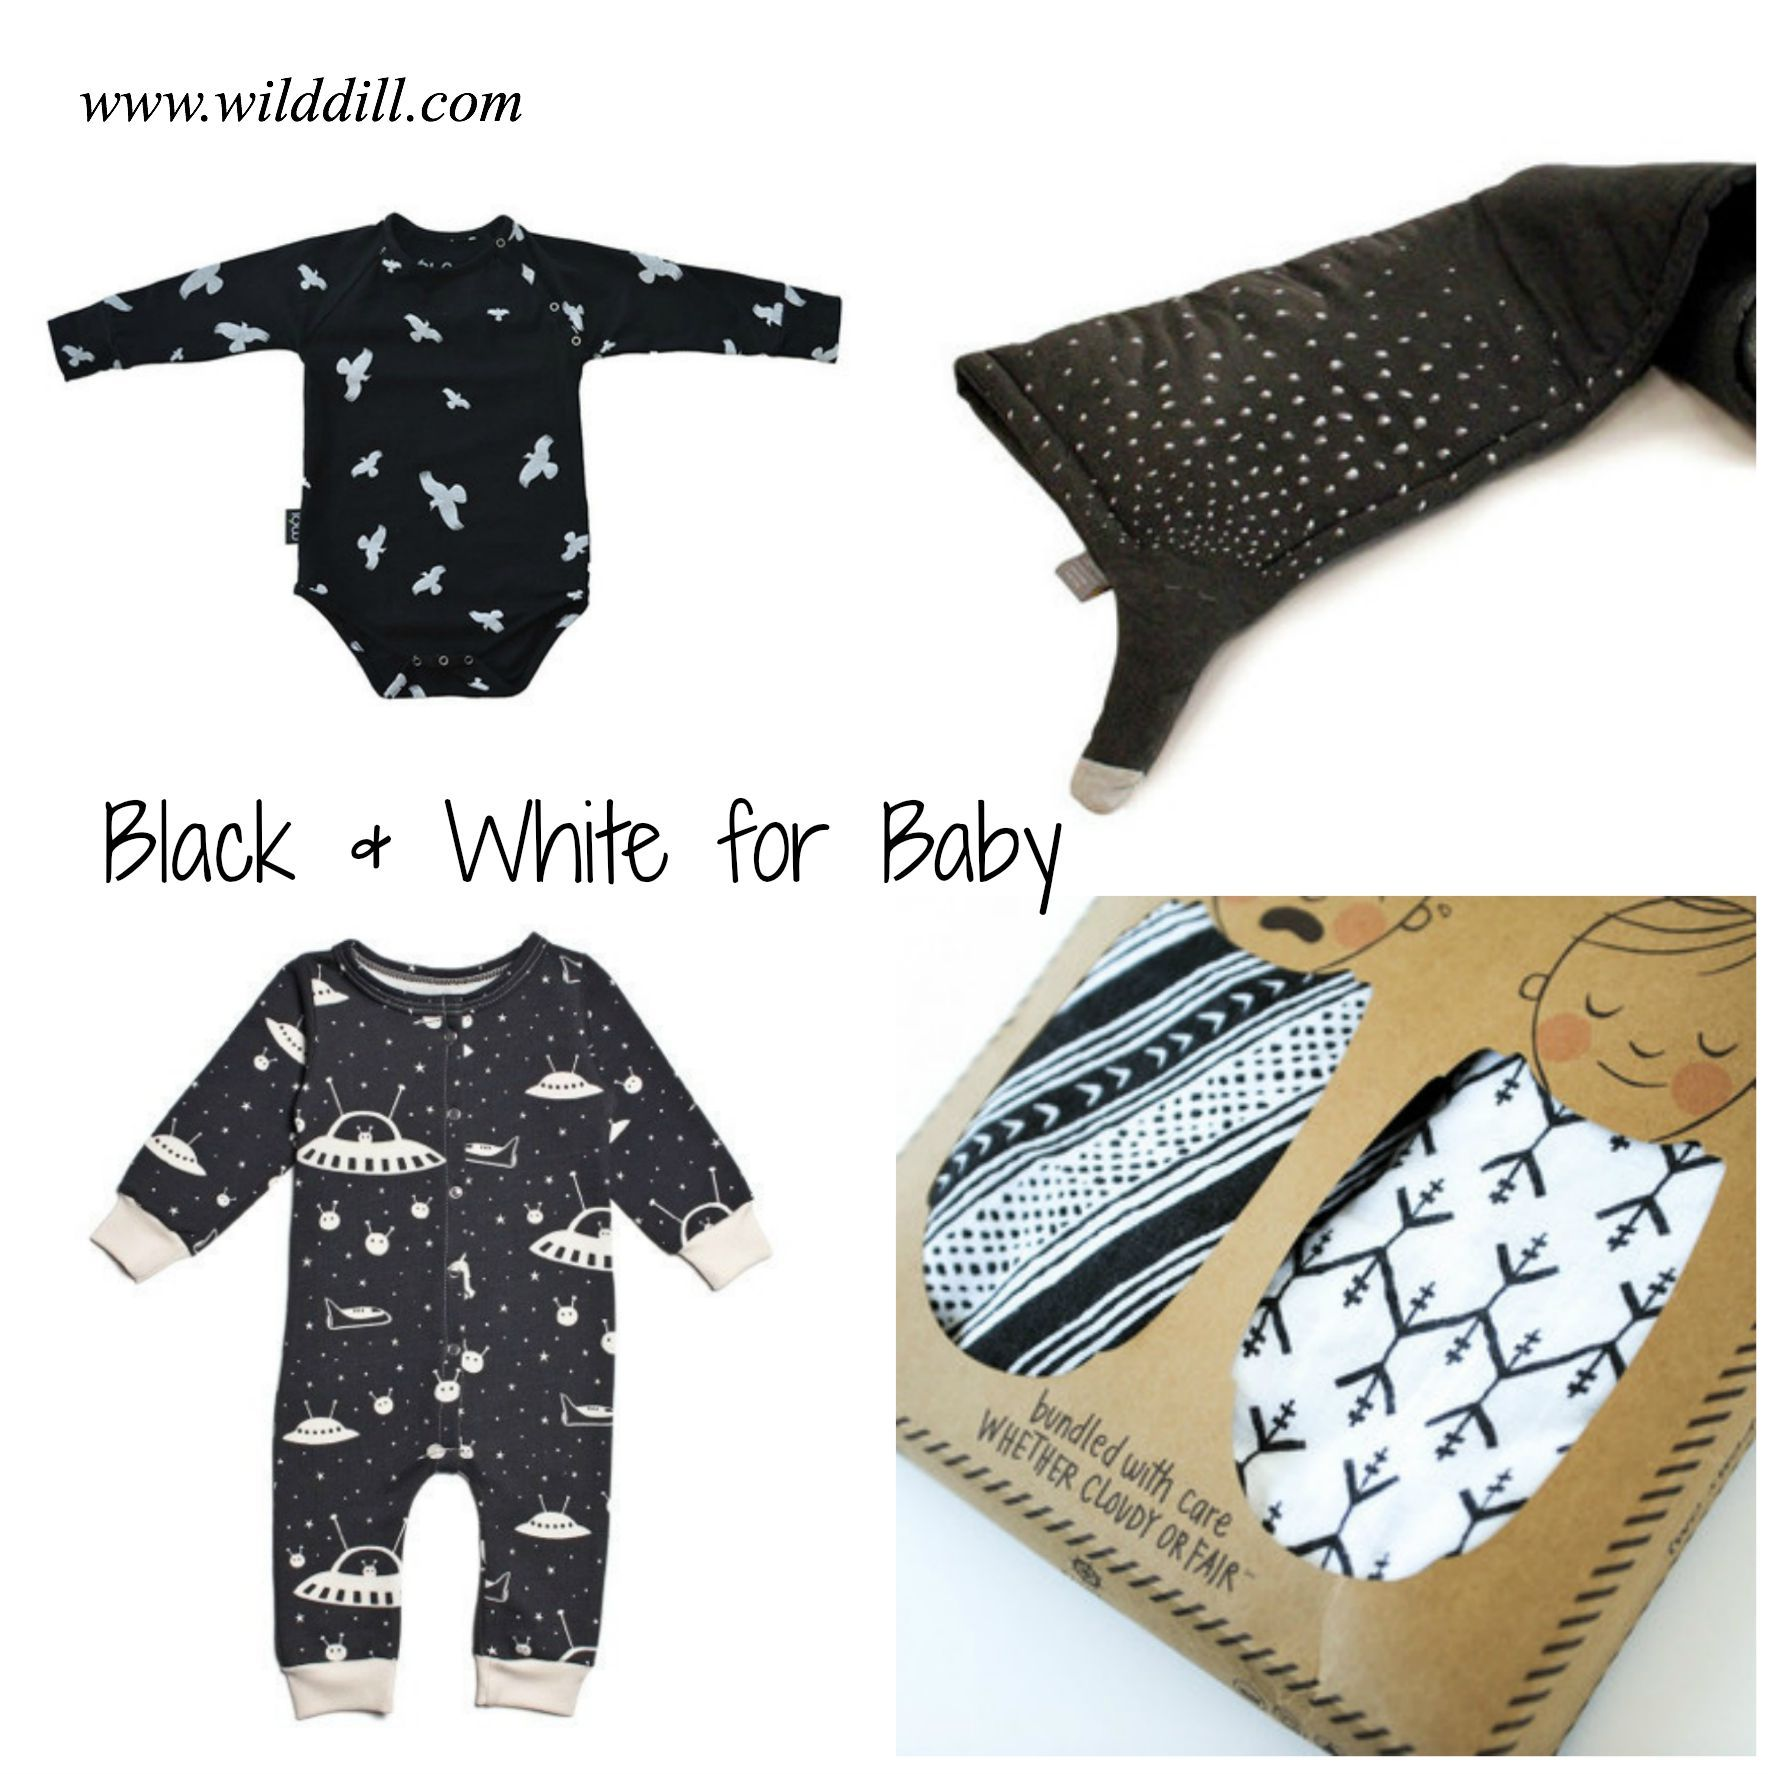 Black and white clothes and accessories for baby! Modern